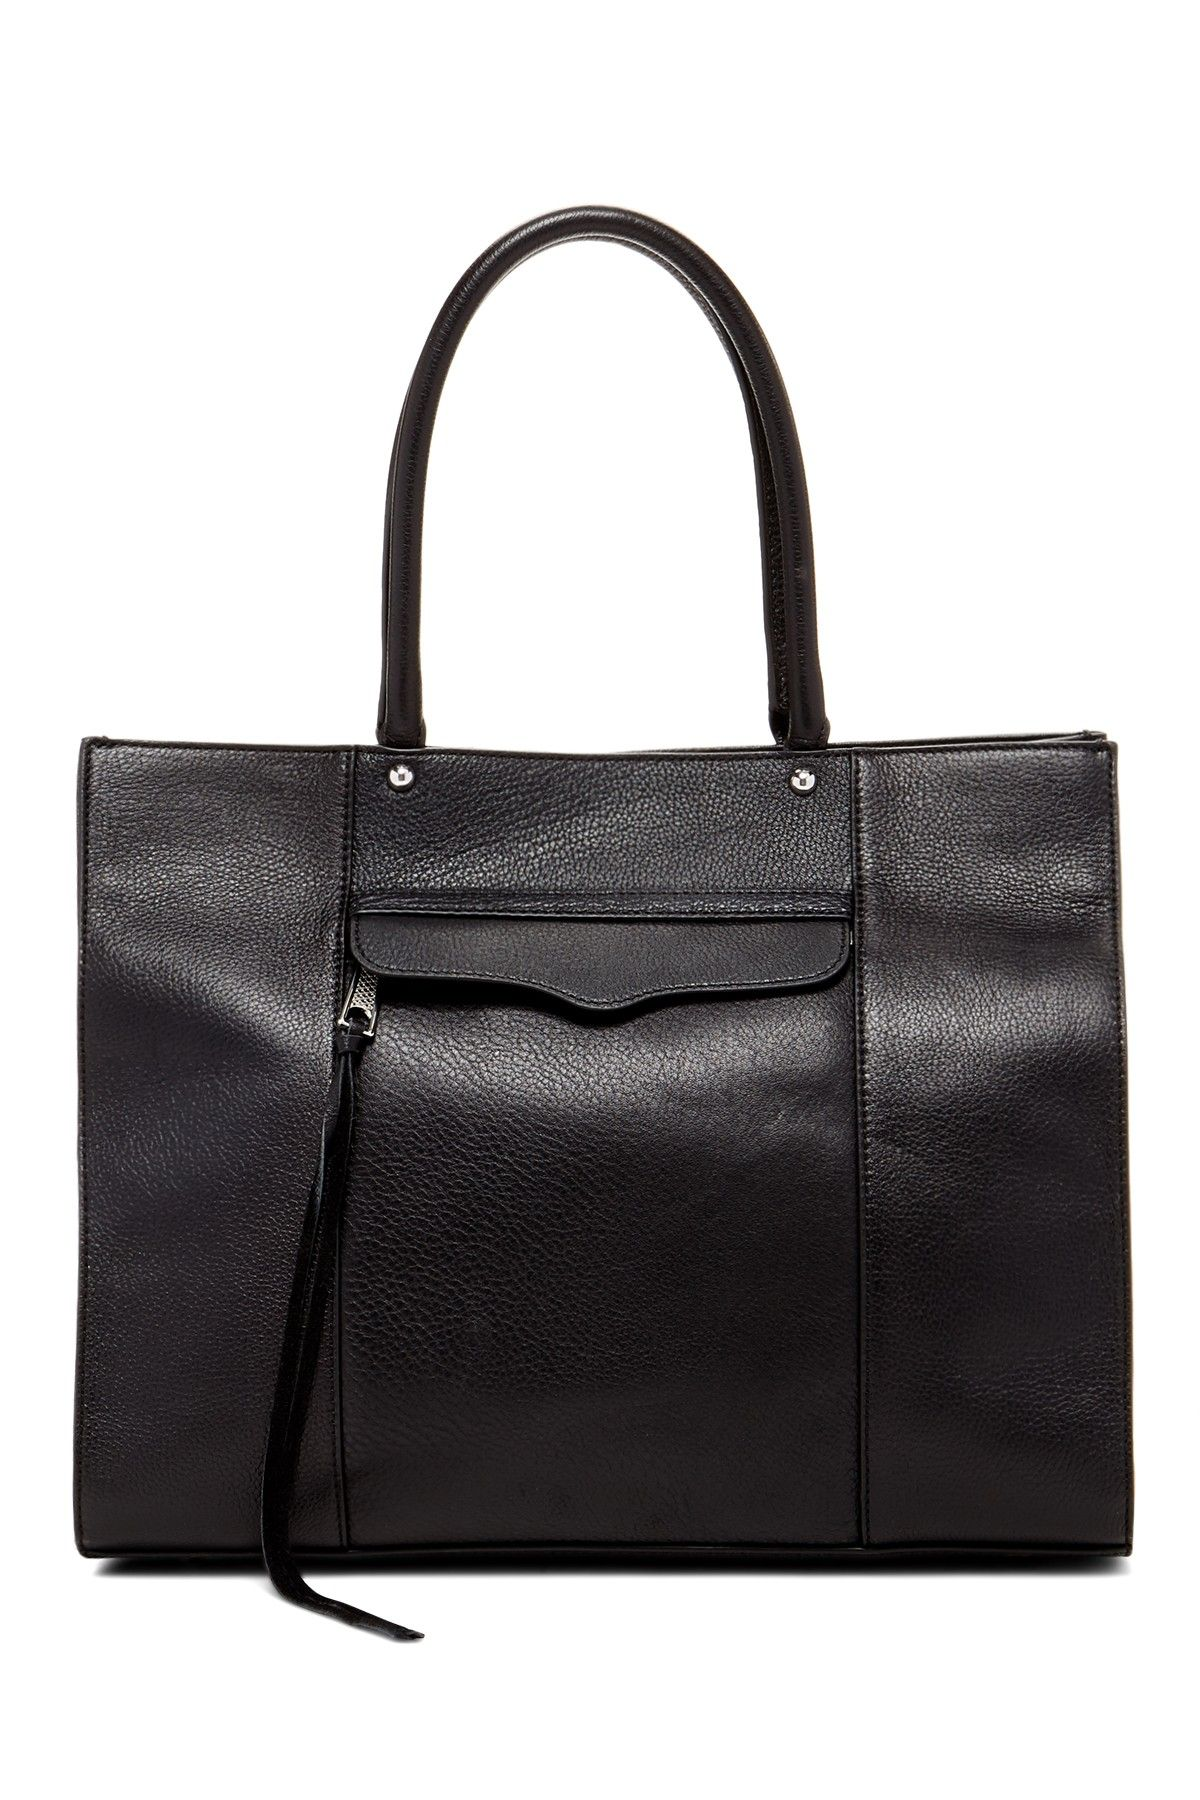 Rebecca Minkoff Malaga Mab Leather Tote At Nordstrom Rack Free Shipping On Orders Over